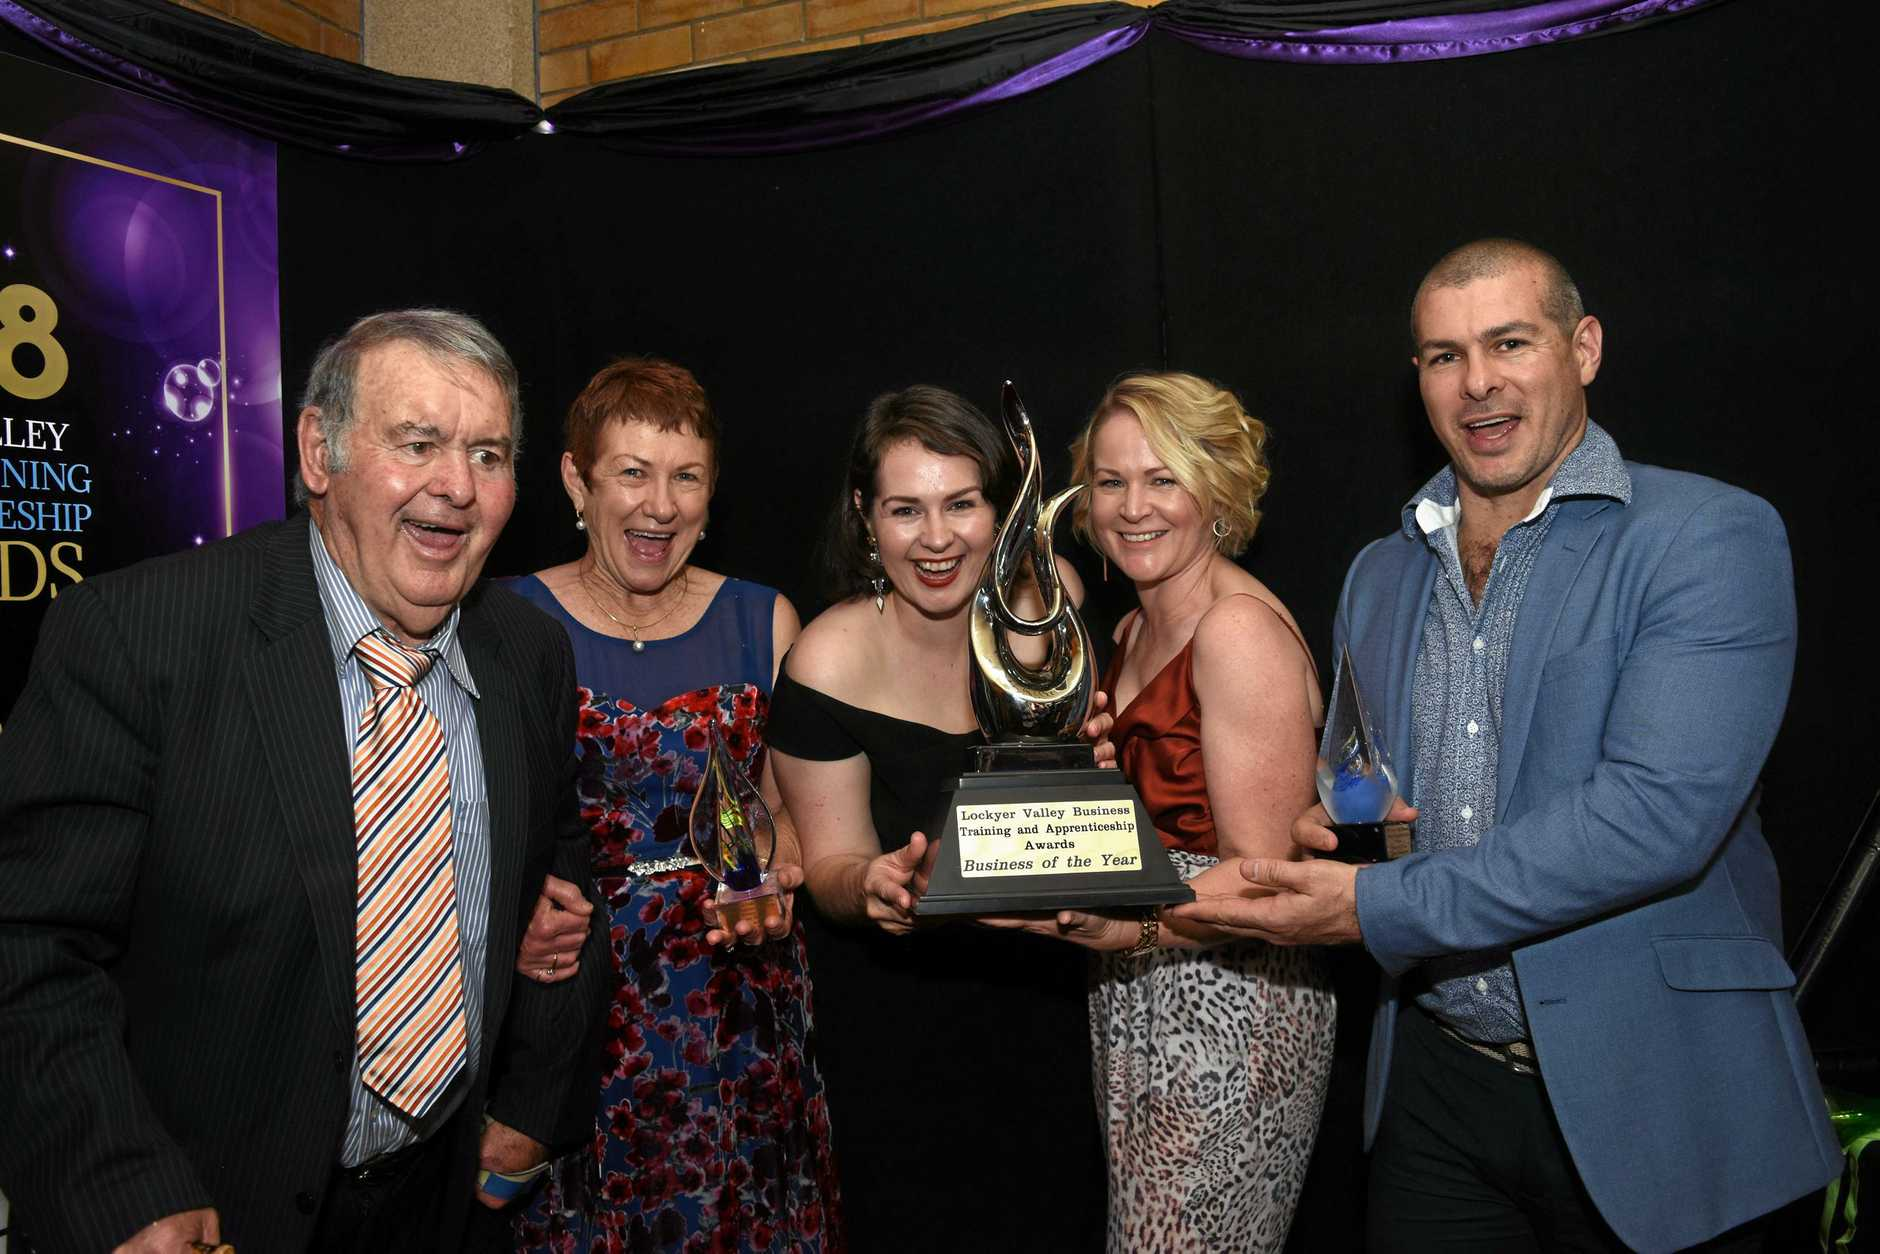 Porters Plainland Hotel has been named Lockyer Valley Business of the Year at the 2018 Lockyer Valley Business, Training and Apprenticeship Awards, Saturday, October 20, 2018.